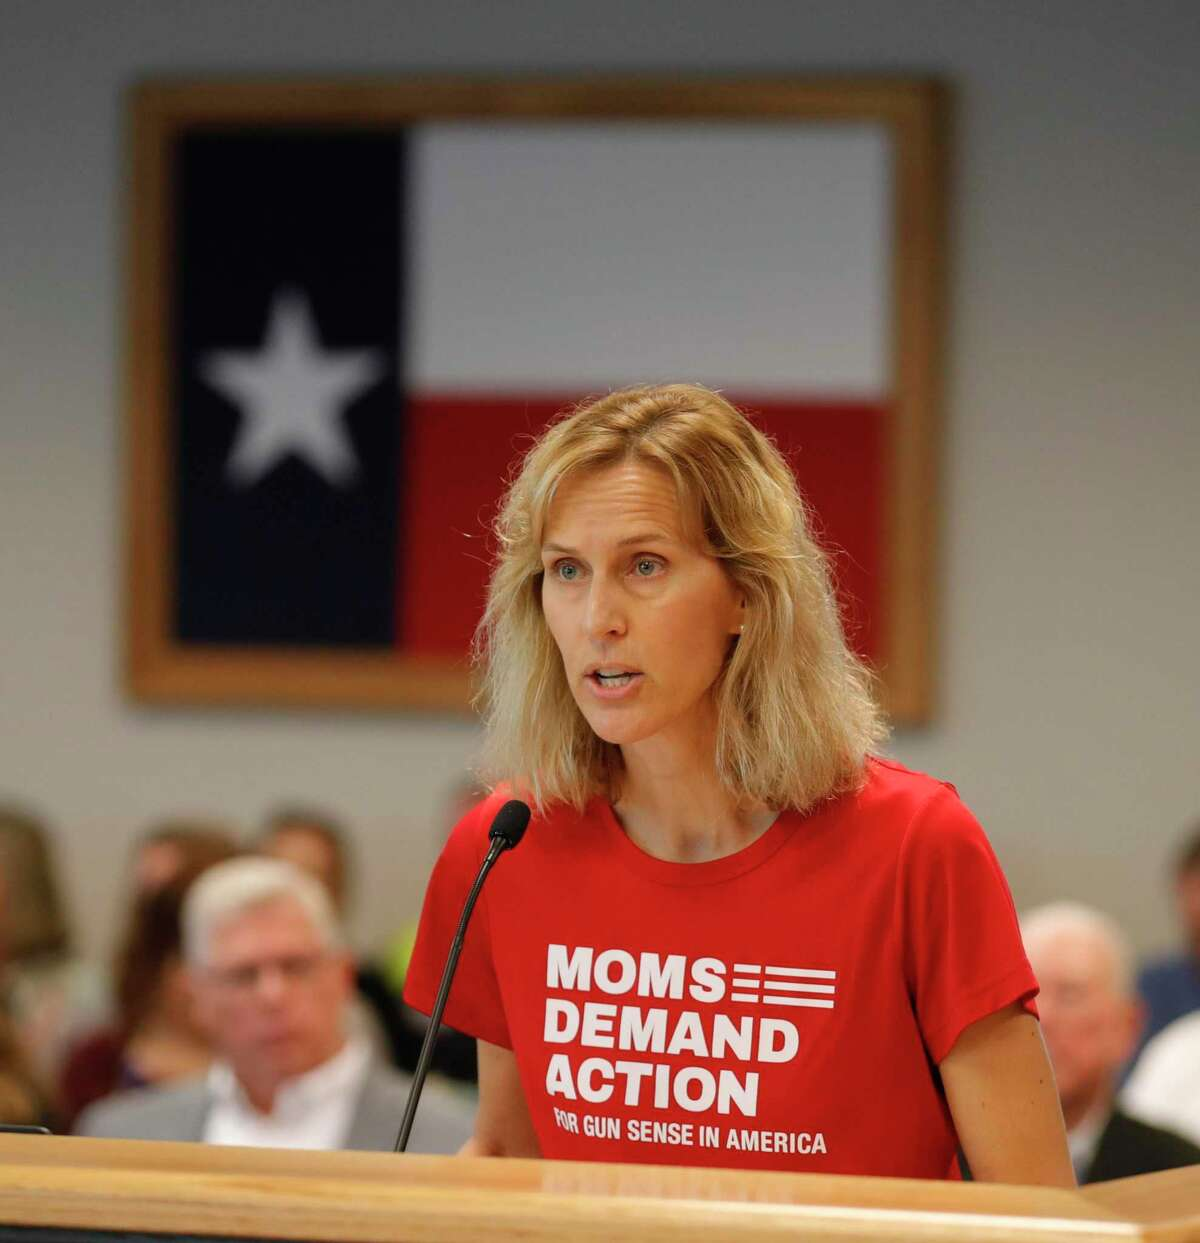 Holly Novak with Moms Demand Action speaks against a resolution to make the Montgomery County a gun sanctuary during a Montgomery County Commissioners Court meeting at the Alan B. Sadler Commissioners Court Building, Tuesday, Nov. 19, 2019, in Conroe.